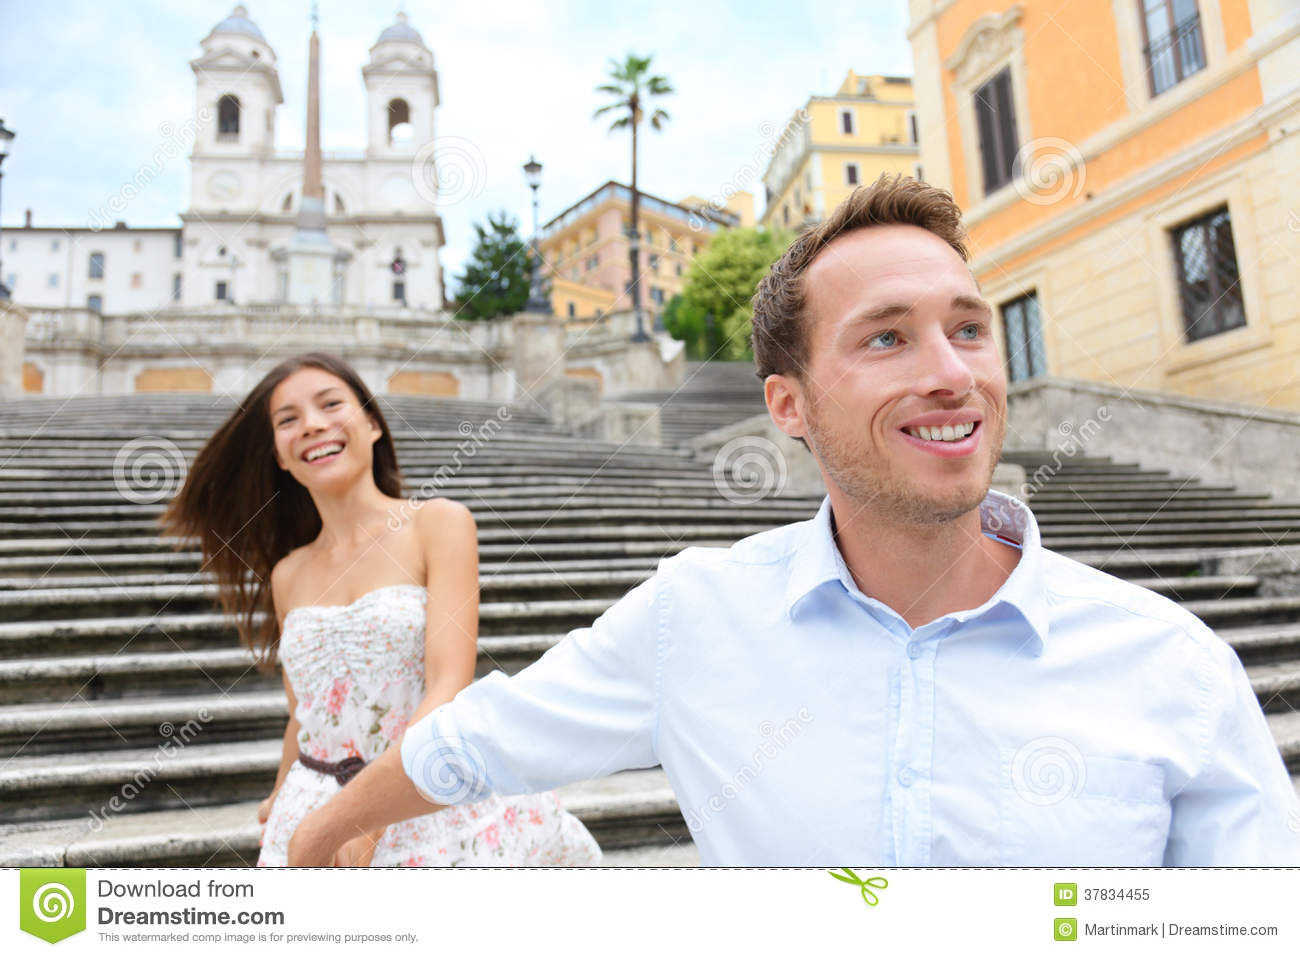 rome city spanish girl personals Everyone knows she is a girl that loves  shopping, city tours, and a few surprises bella italia is a great trip for sisters  day 3 - rome/vatican city tour .